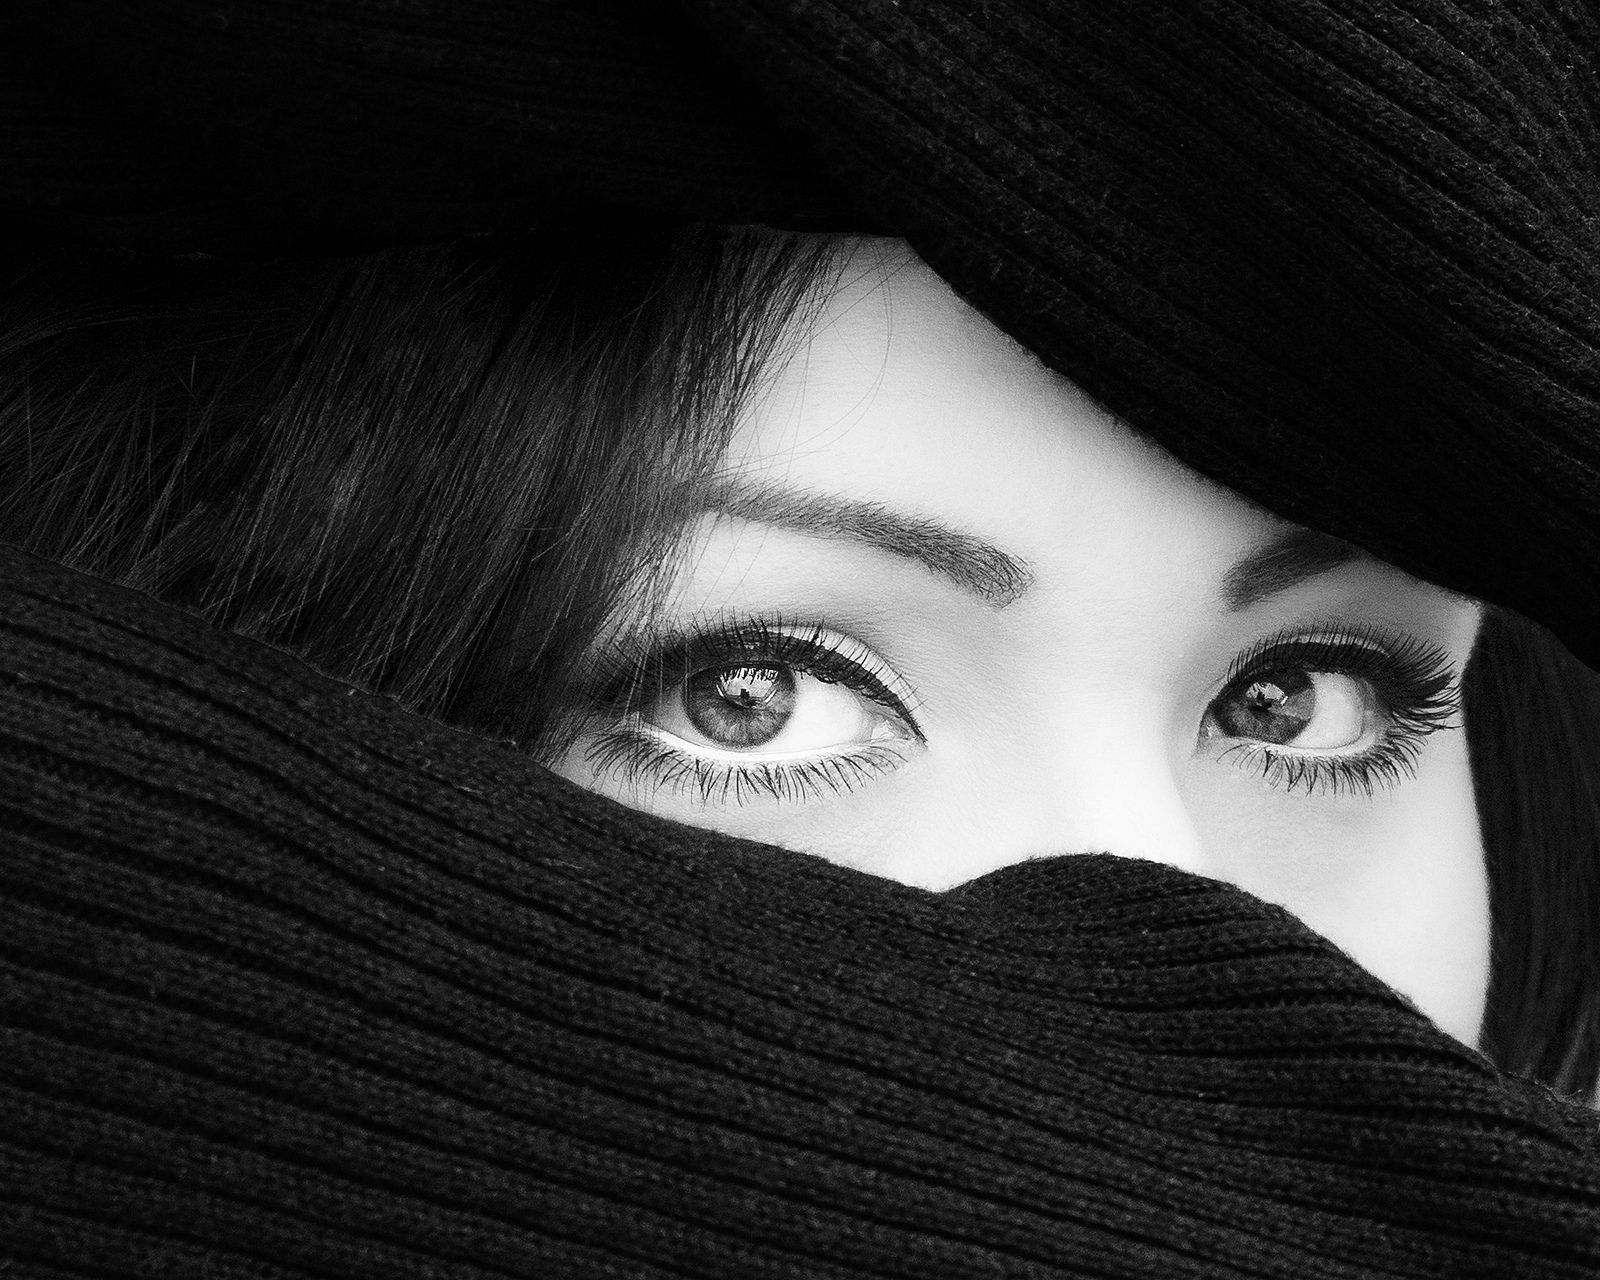 Pin By Sina On My Saves In 2020 Eye Photography Beautiful Eyes Passion Photography